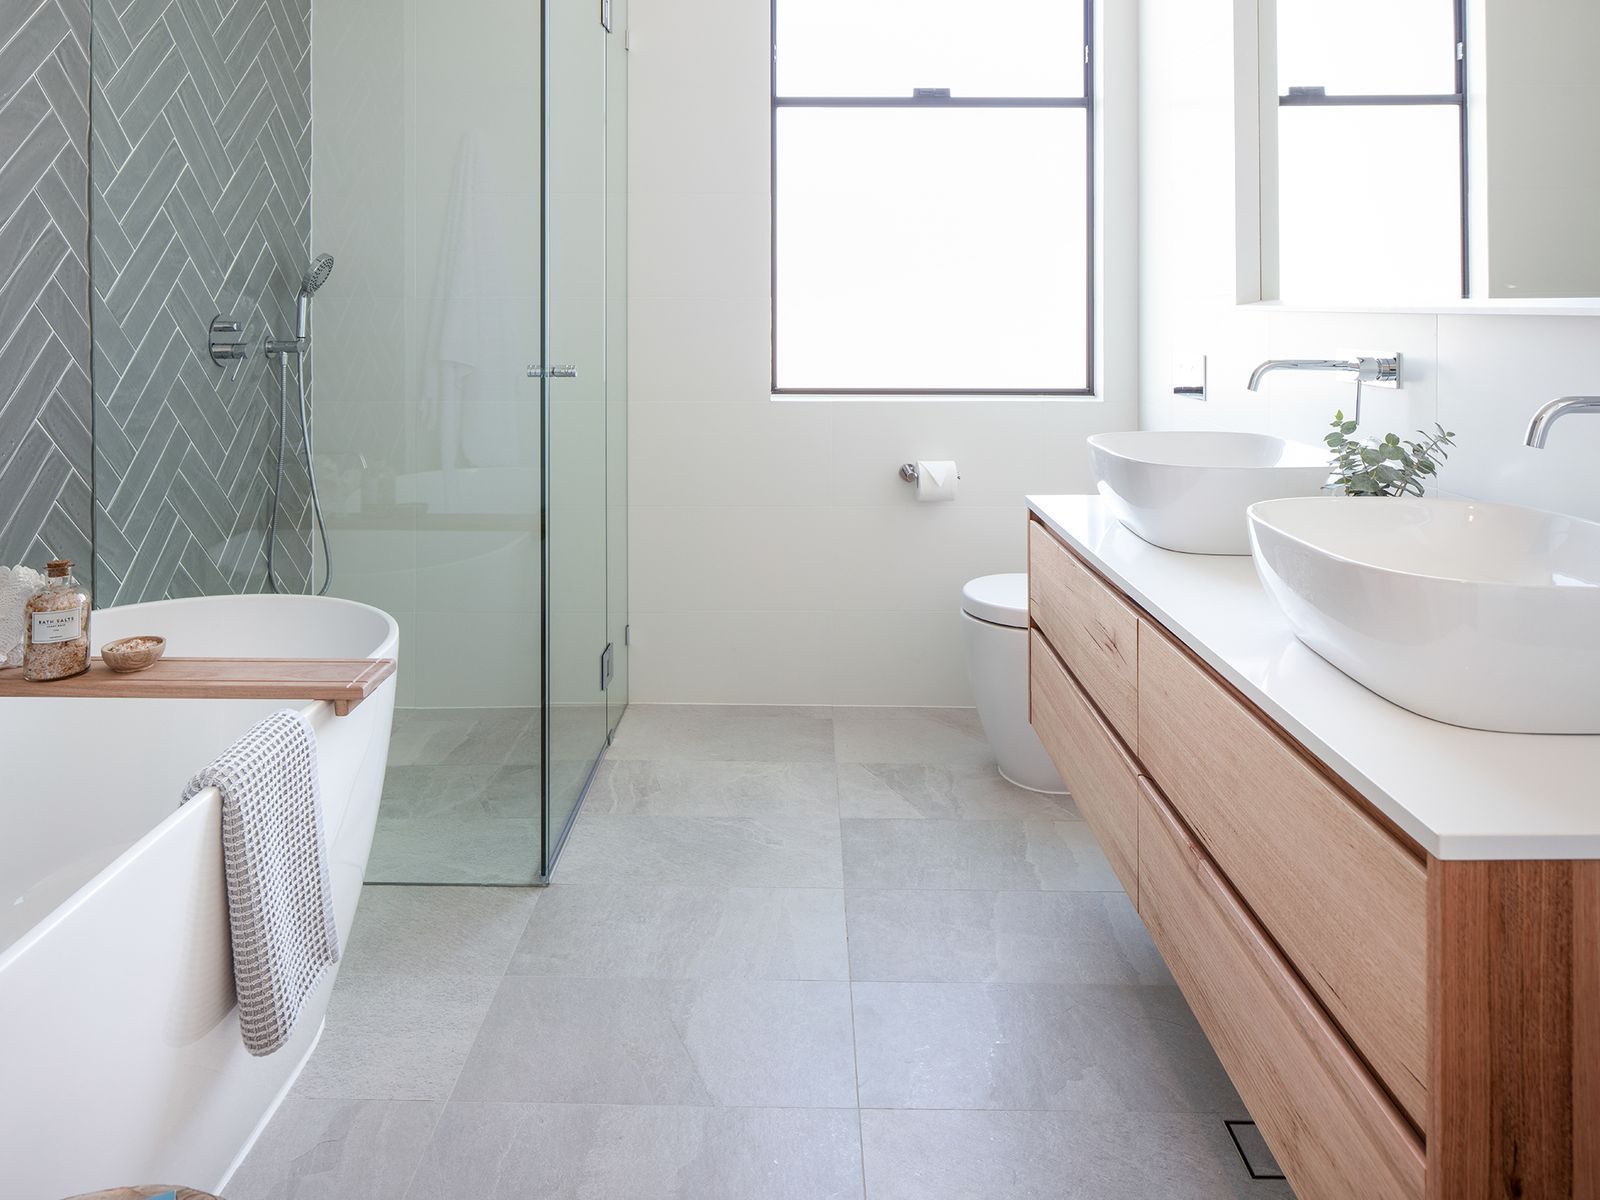 We Reveal 4 Hot Bathrooms In A Sydney Renovation With Images Small Bathroom Best Bathroom Tiles Bathroom Tile Designs